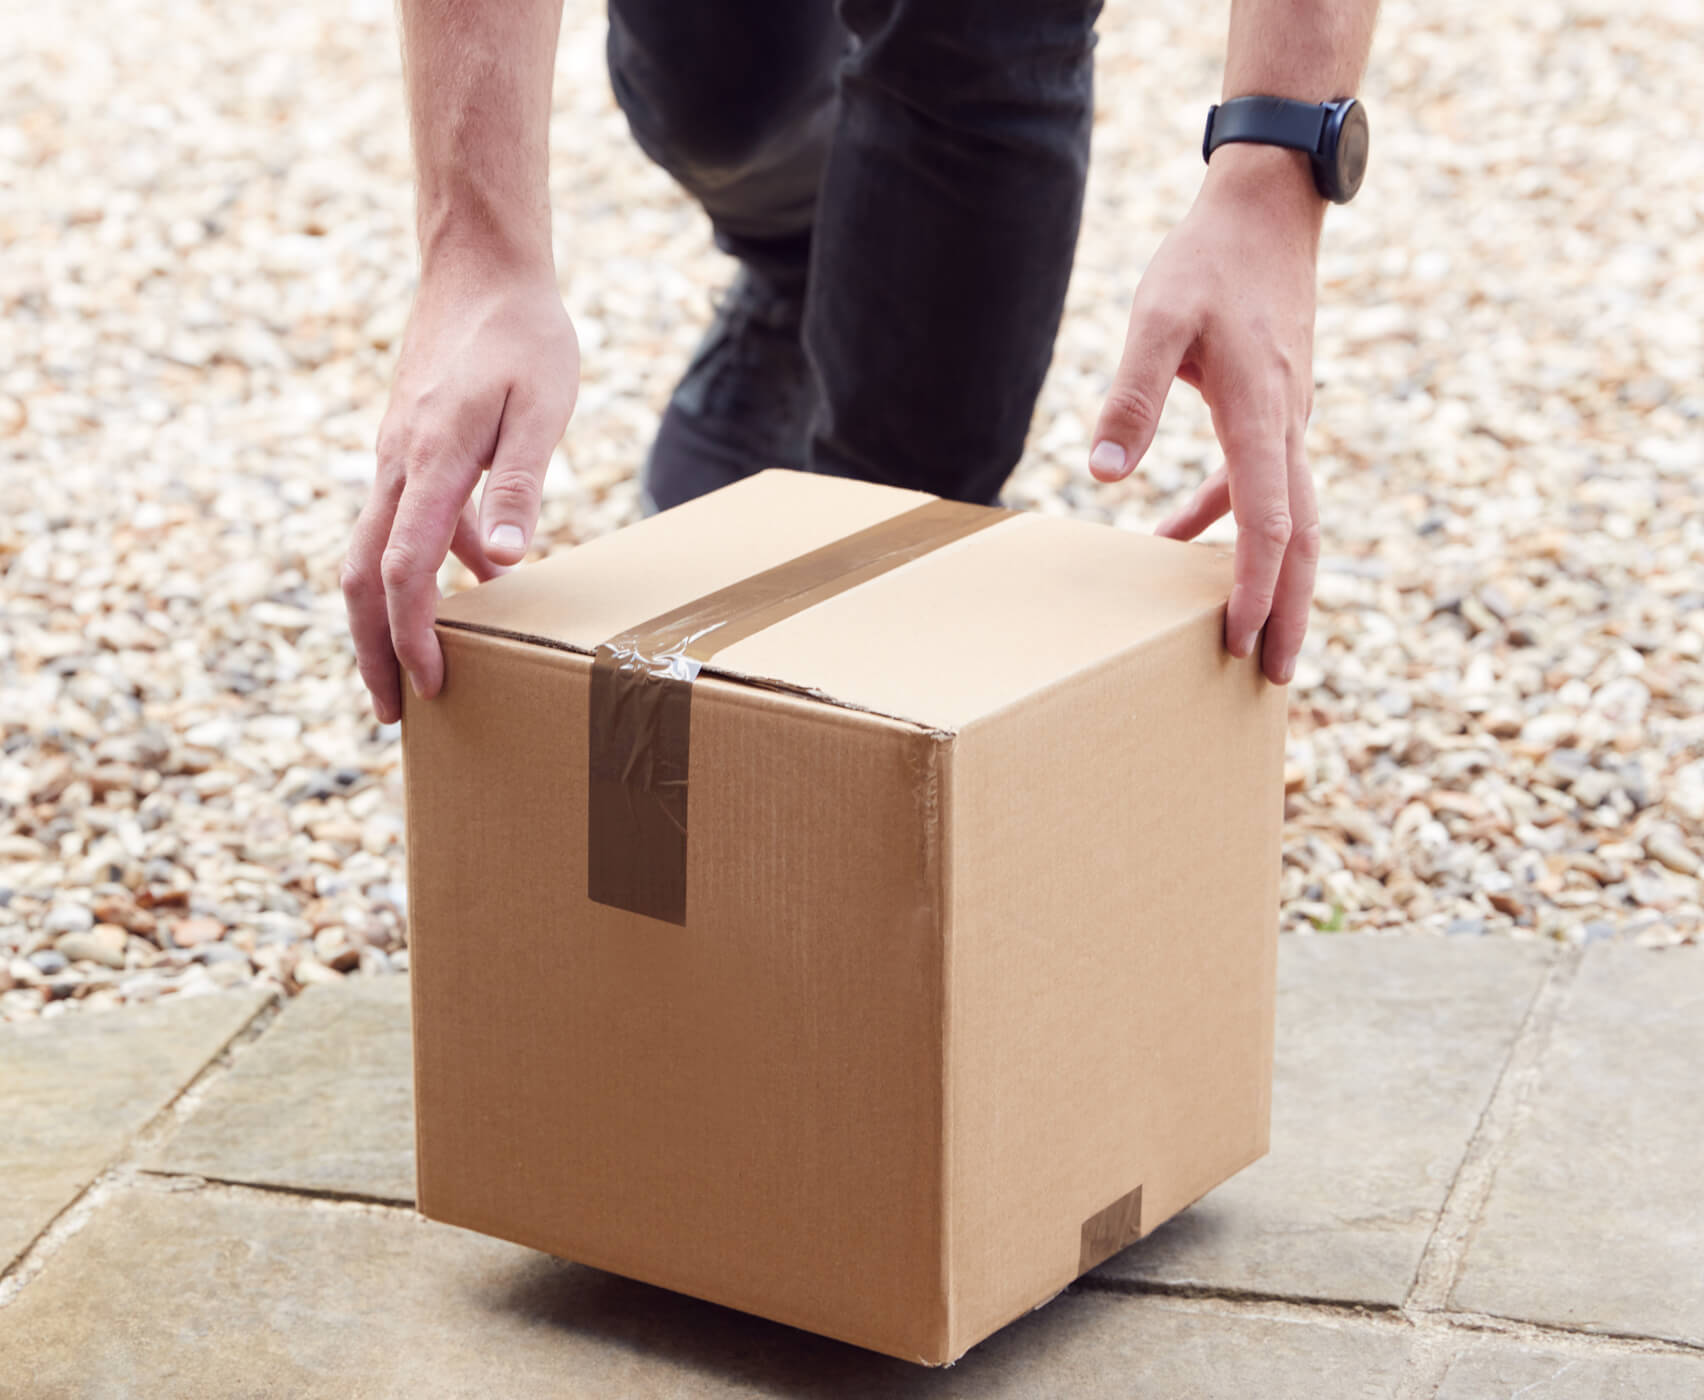 PRESS RELEASE: 42% of consumers have missed deliveries due to miscommunication.